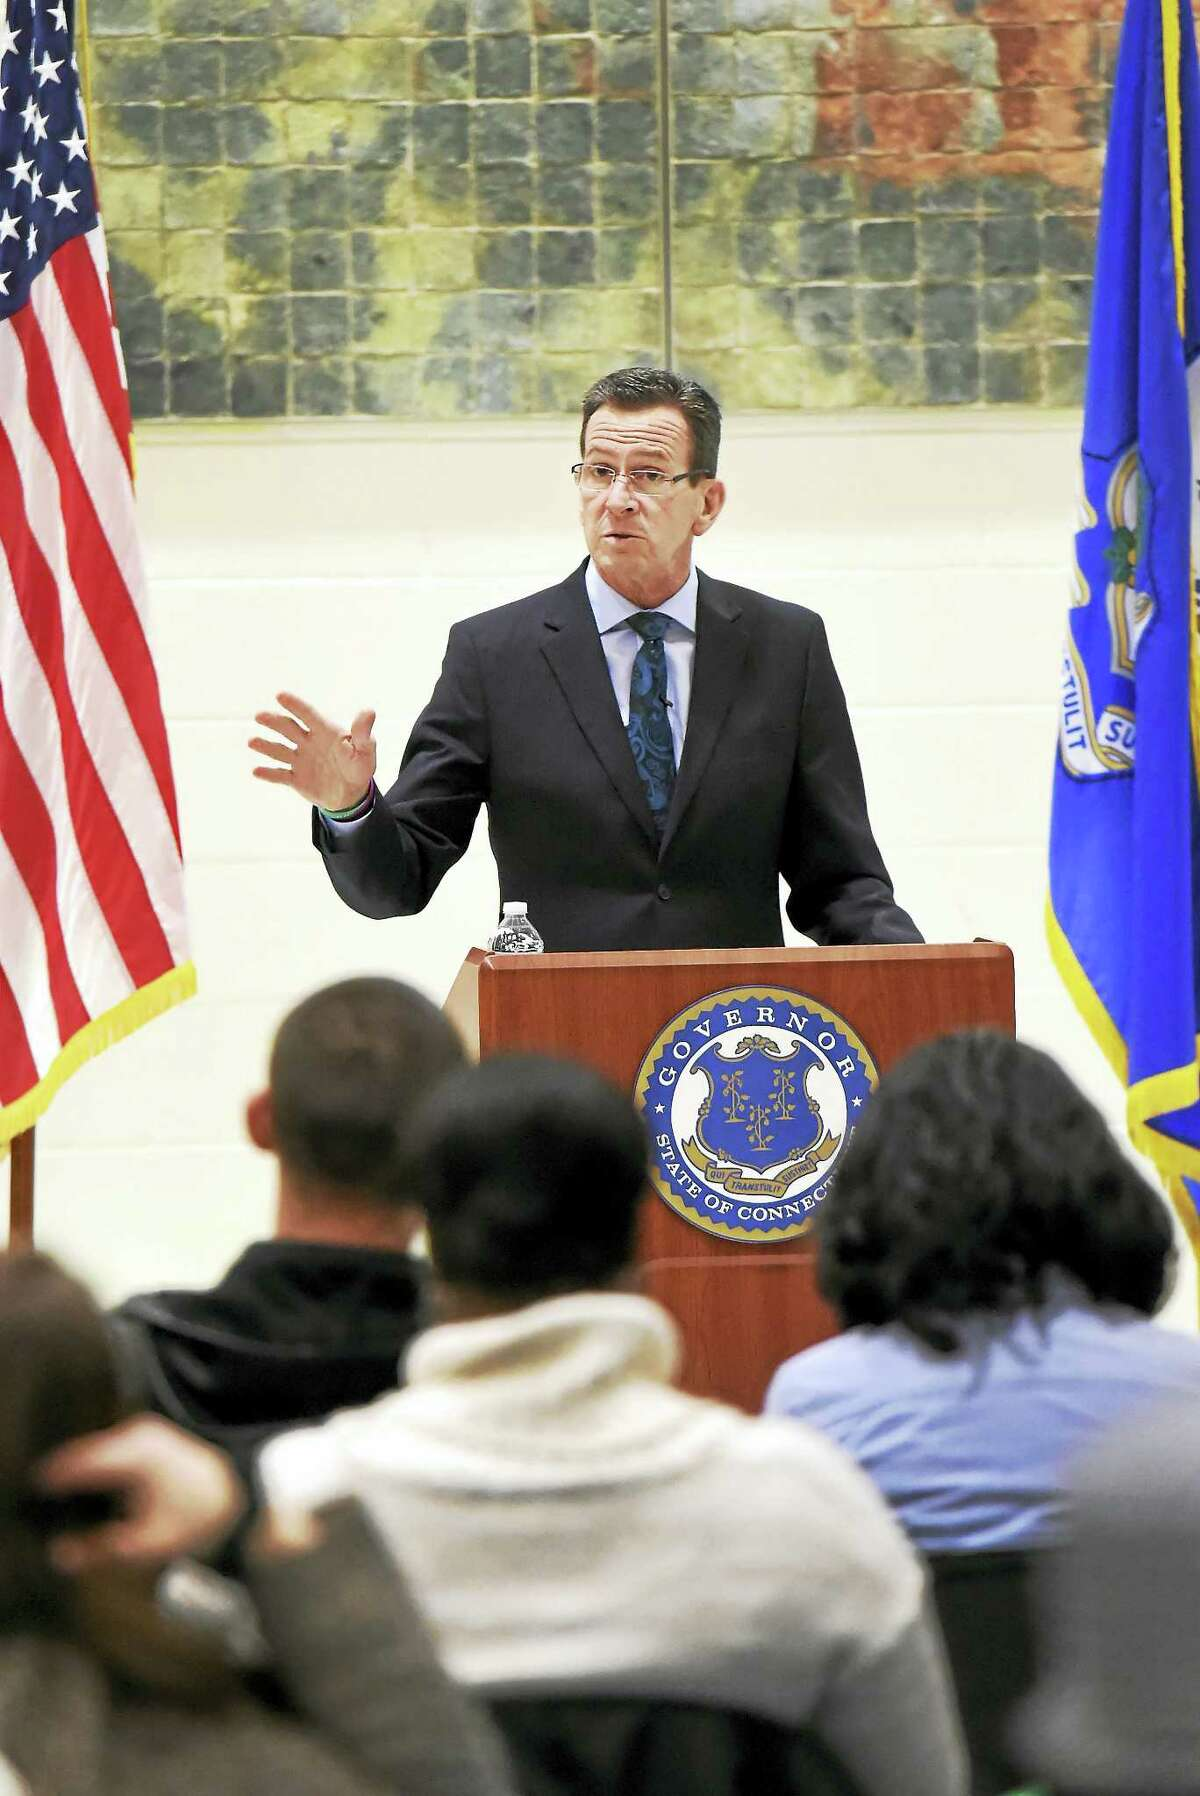 In this file photo, Gov. Dannel P. Malloy's Town Hall Forum at Wilbur Cross High School in New Haven Tuesday evening, February 23, 2016, where he answers questions from constituents on a range of state issues. Governor and the lieutenant governor have been holding the forums throughout the 2016 legislative session. Approximately 250 people attended the forum.